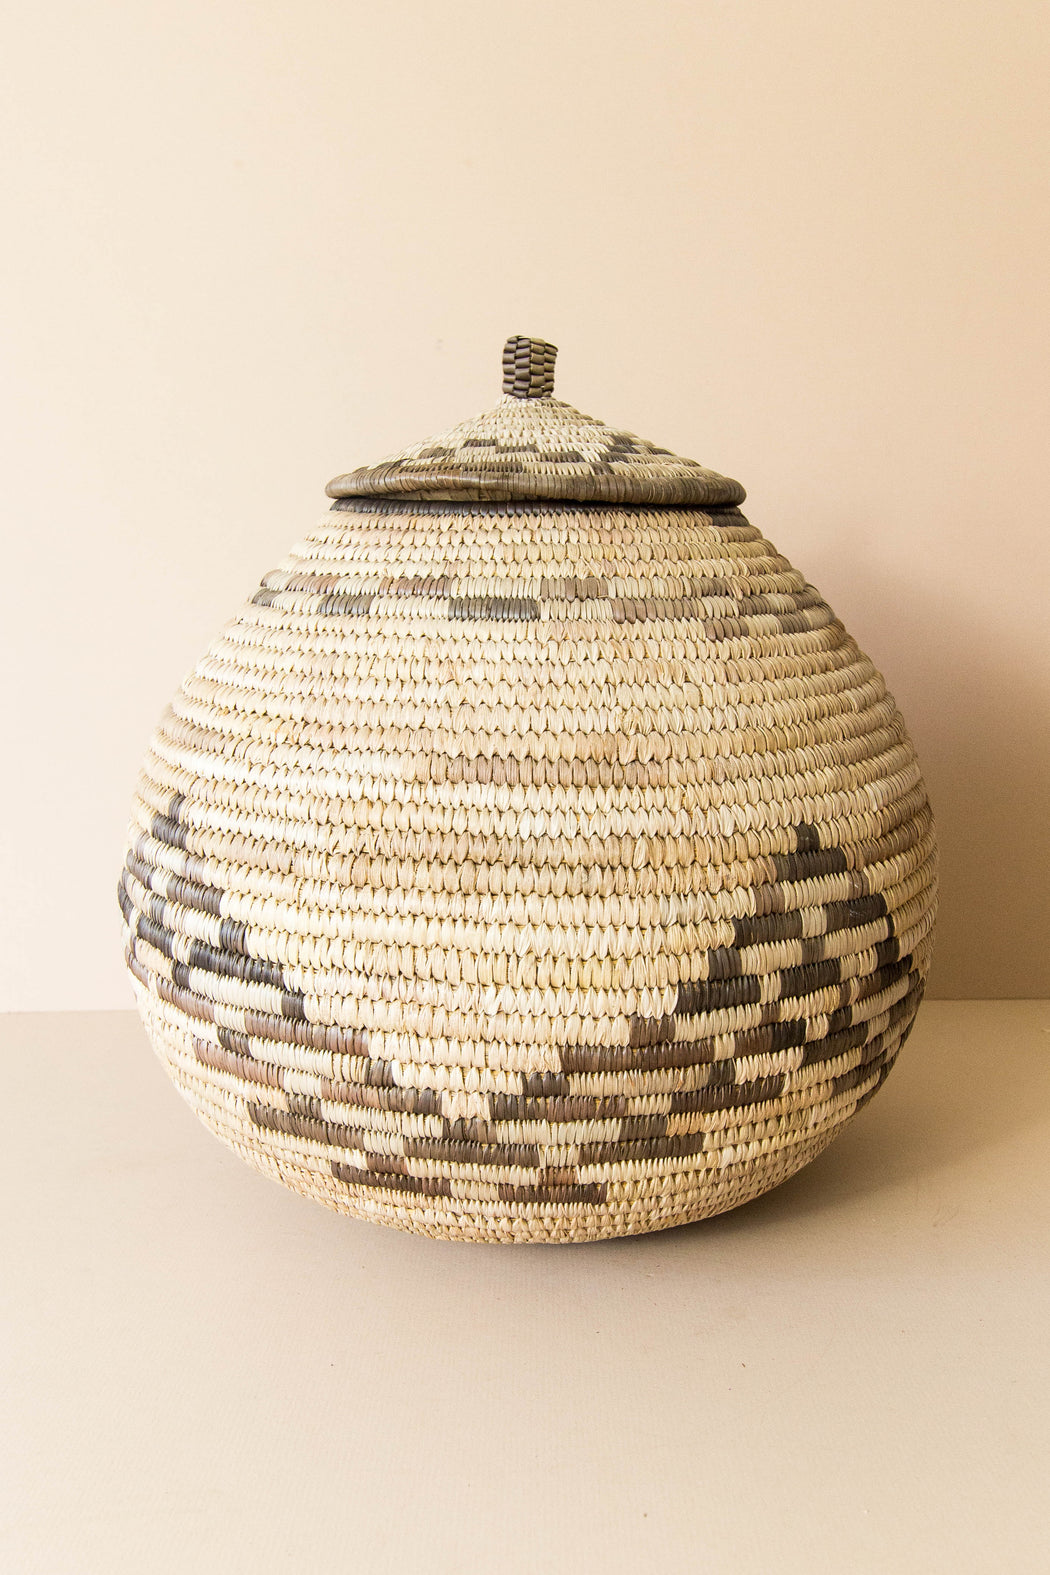 Lidded African Beer Basket